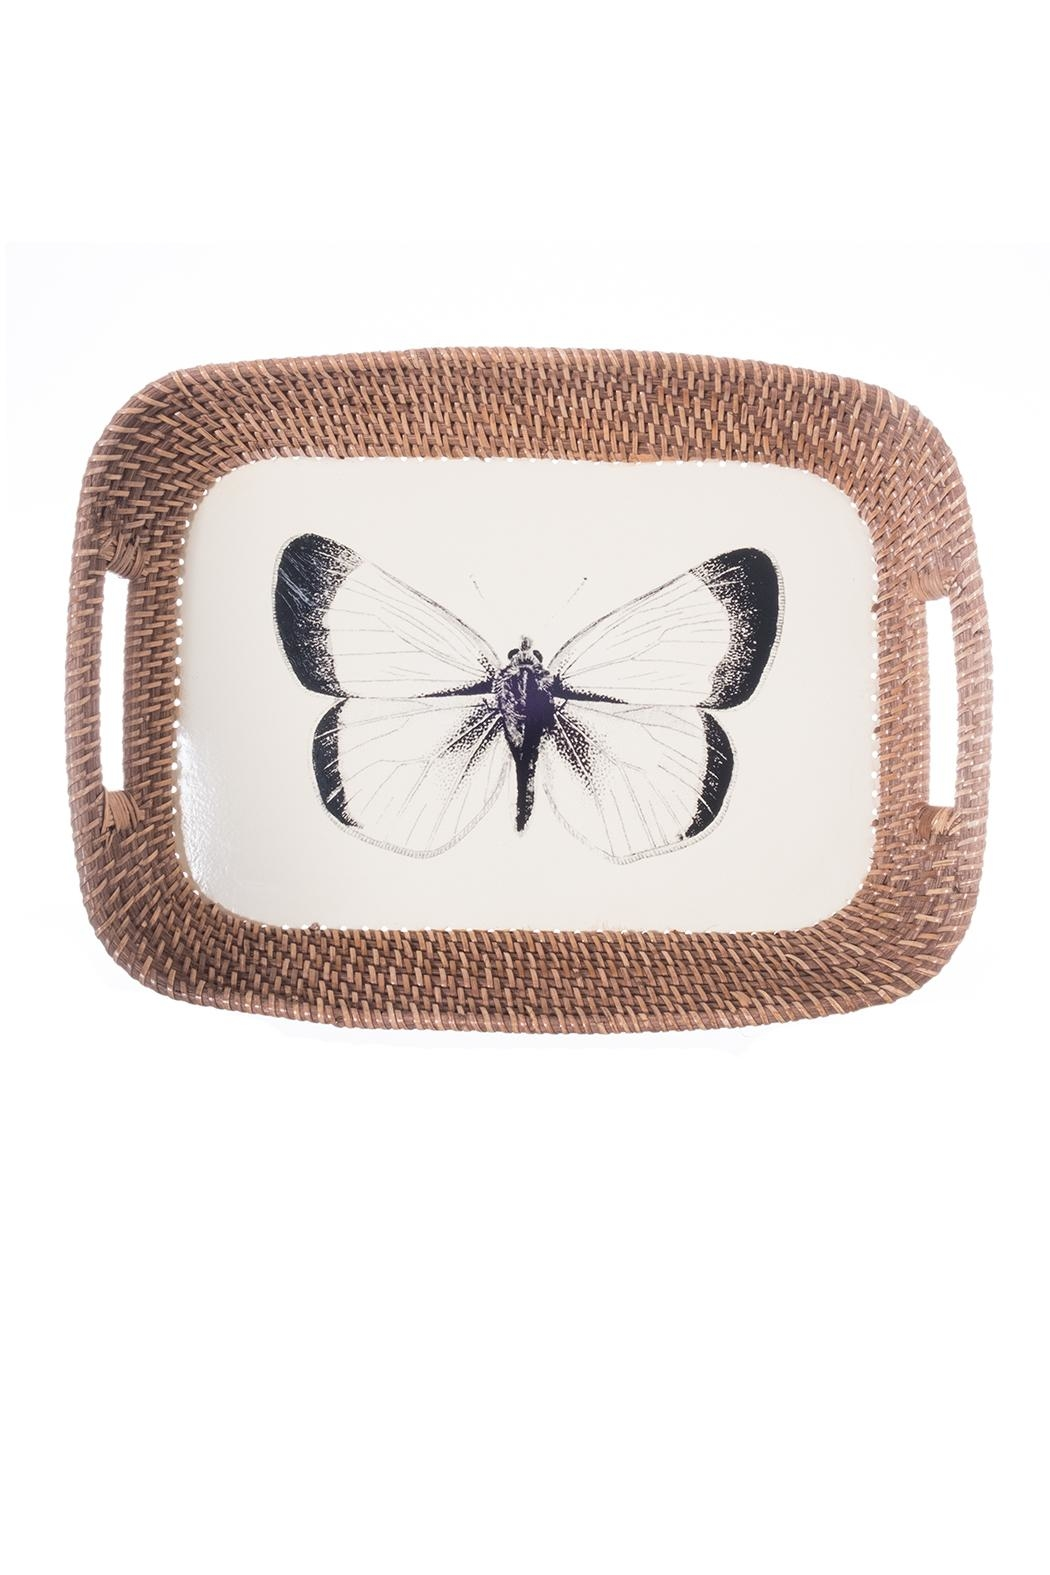 Tag Ltd. Butterfly Tray Basket - Main Image